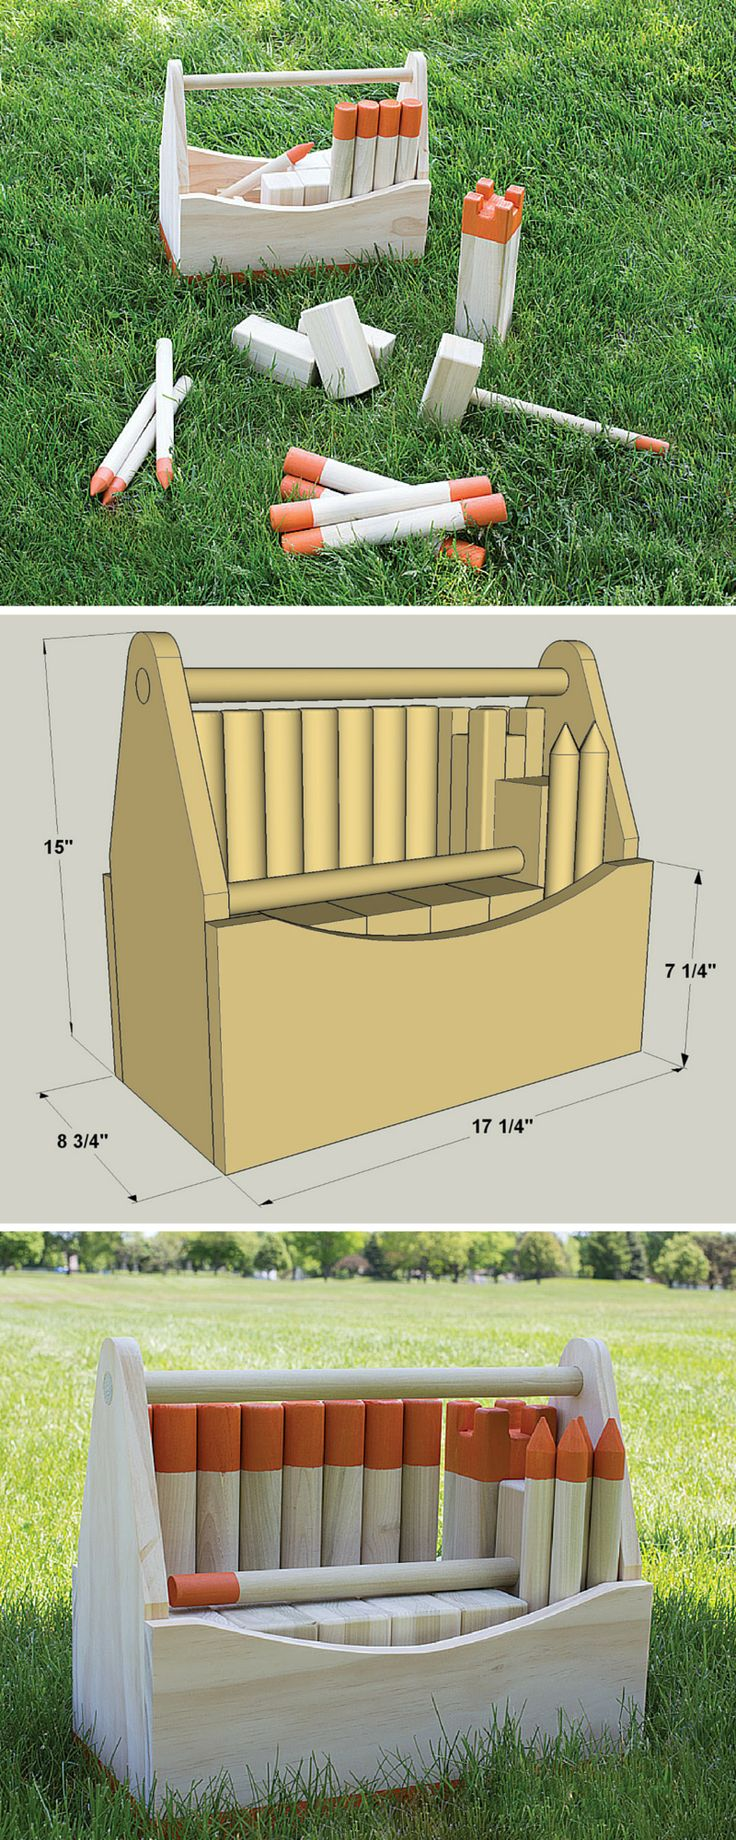 """This fun, challenging outdoor game (pronounced """"koob"""") reportedly dates back to the Viking Ages. Today, it's more popular than ever, for good reason. Our version is fun to build from simple materials, too, and includes a carrying box. We've even include links to official rules in the """"extras"""" tab. Download the free DIY plans at buildsomething.com"""